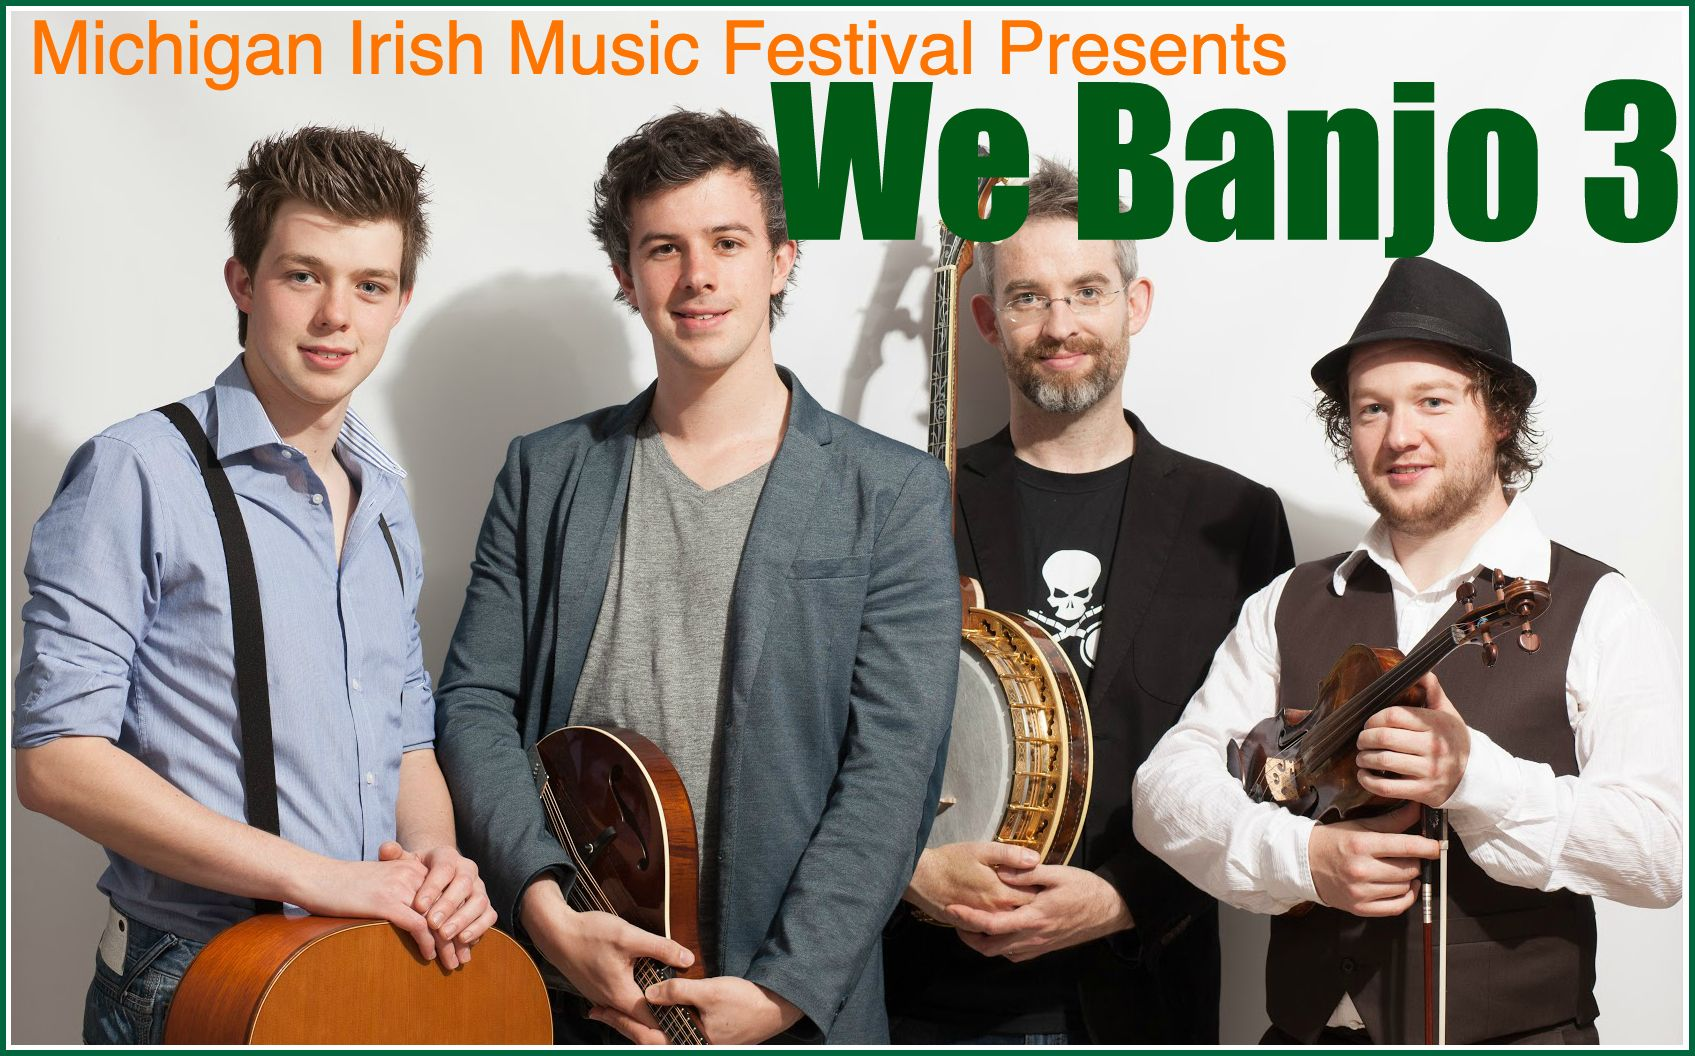 We Banjo 3 Made Their Mimf Debut In 2013 By Popular Demand They Return In 2015 From Galway These 4 Combine Iris Irish Music Music Festival Band Of Brothers